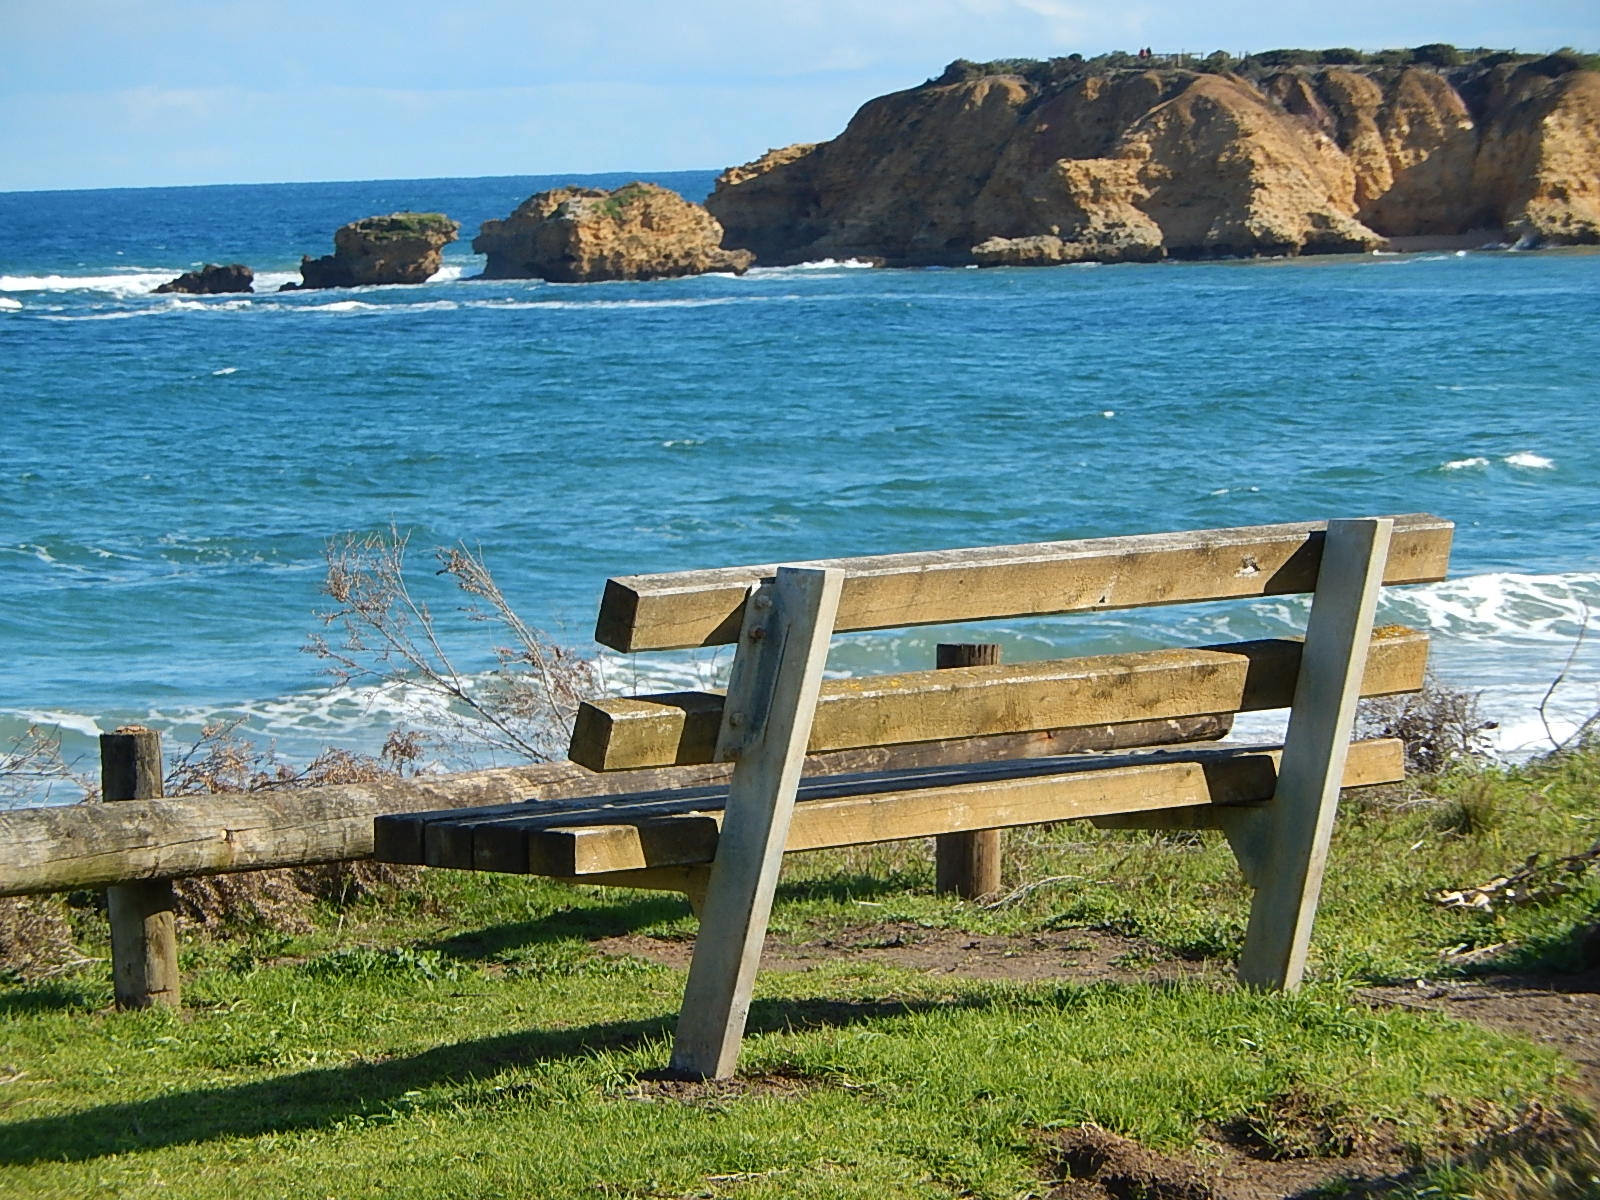 The perfect place to watch the waves in Torquay - 5 Aussie Weekend Getaway Ideas Off The Beaten Path - The Trusted Traveller